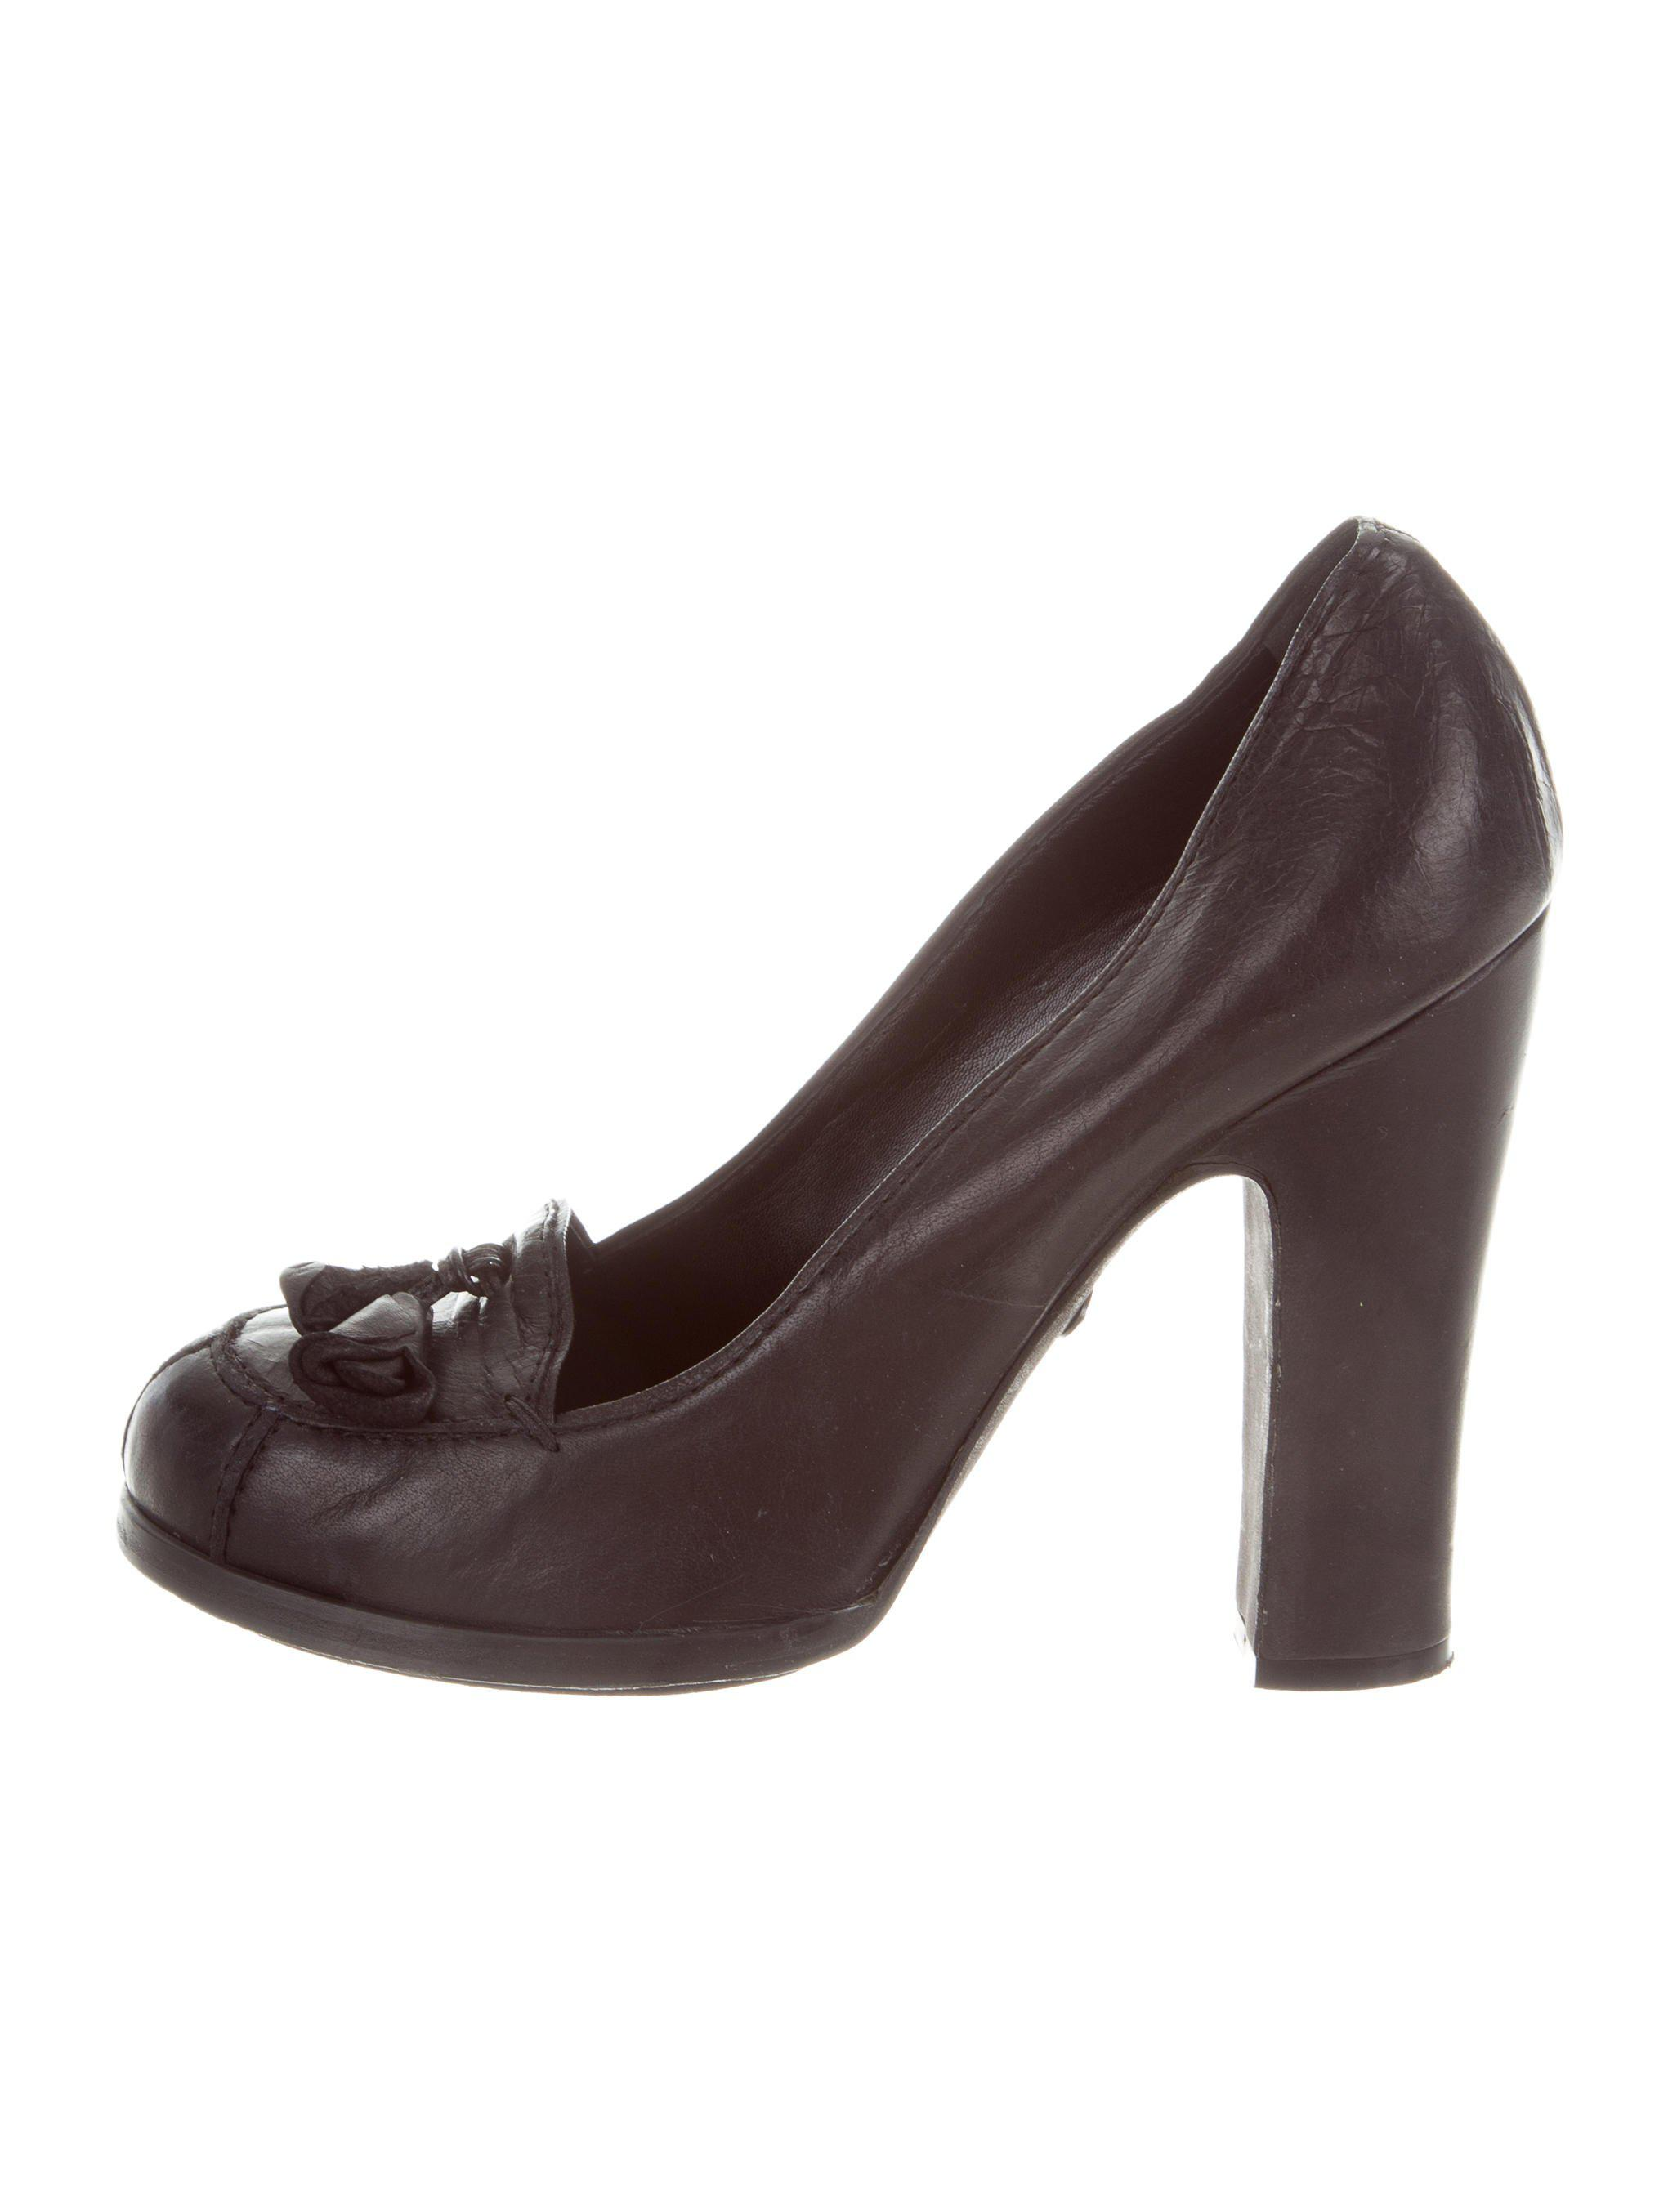 Rochas Leather Round-Toe Pumps quality free shipping for sale yuNzKW